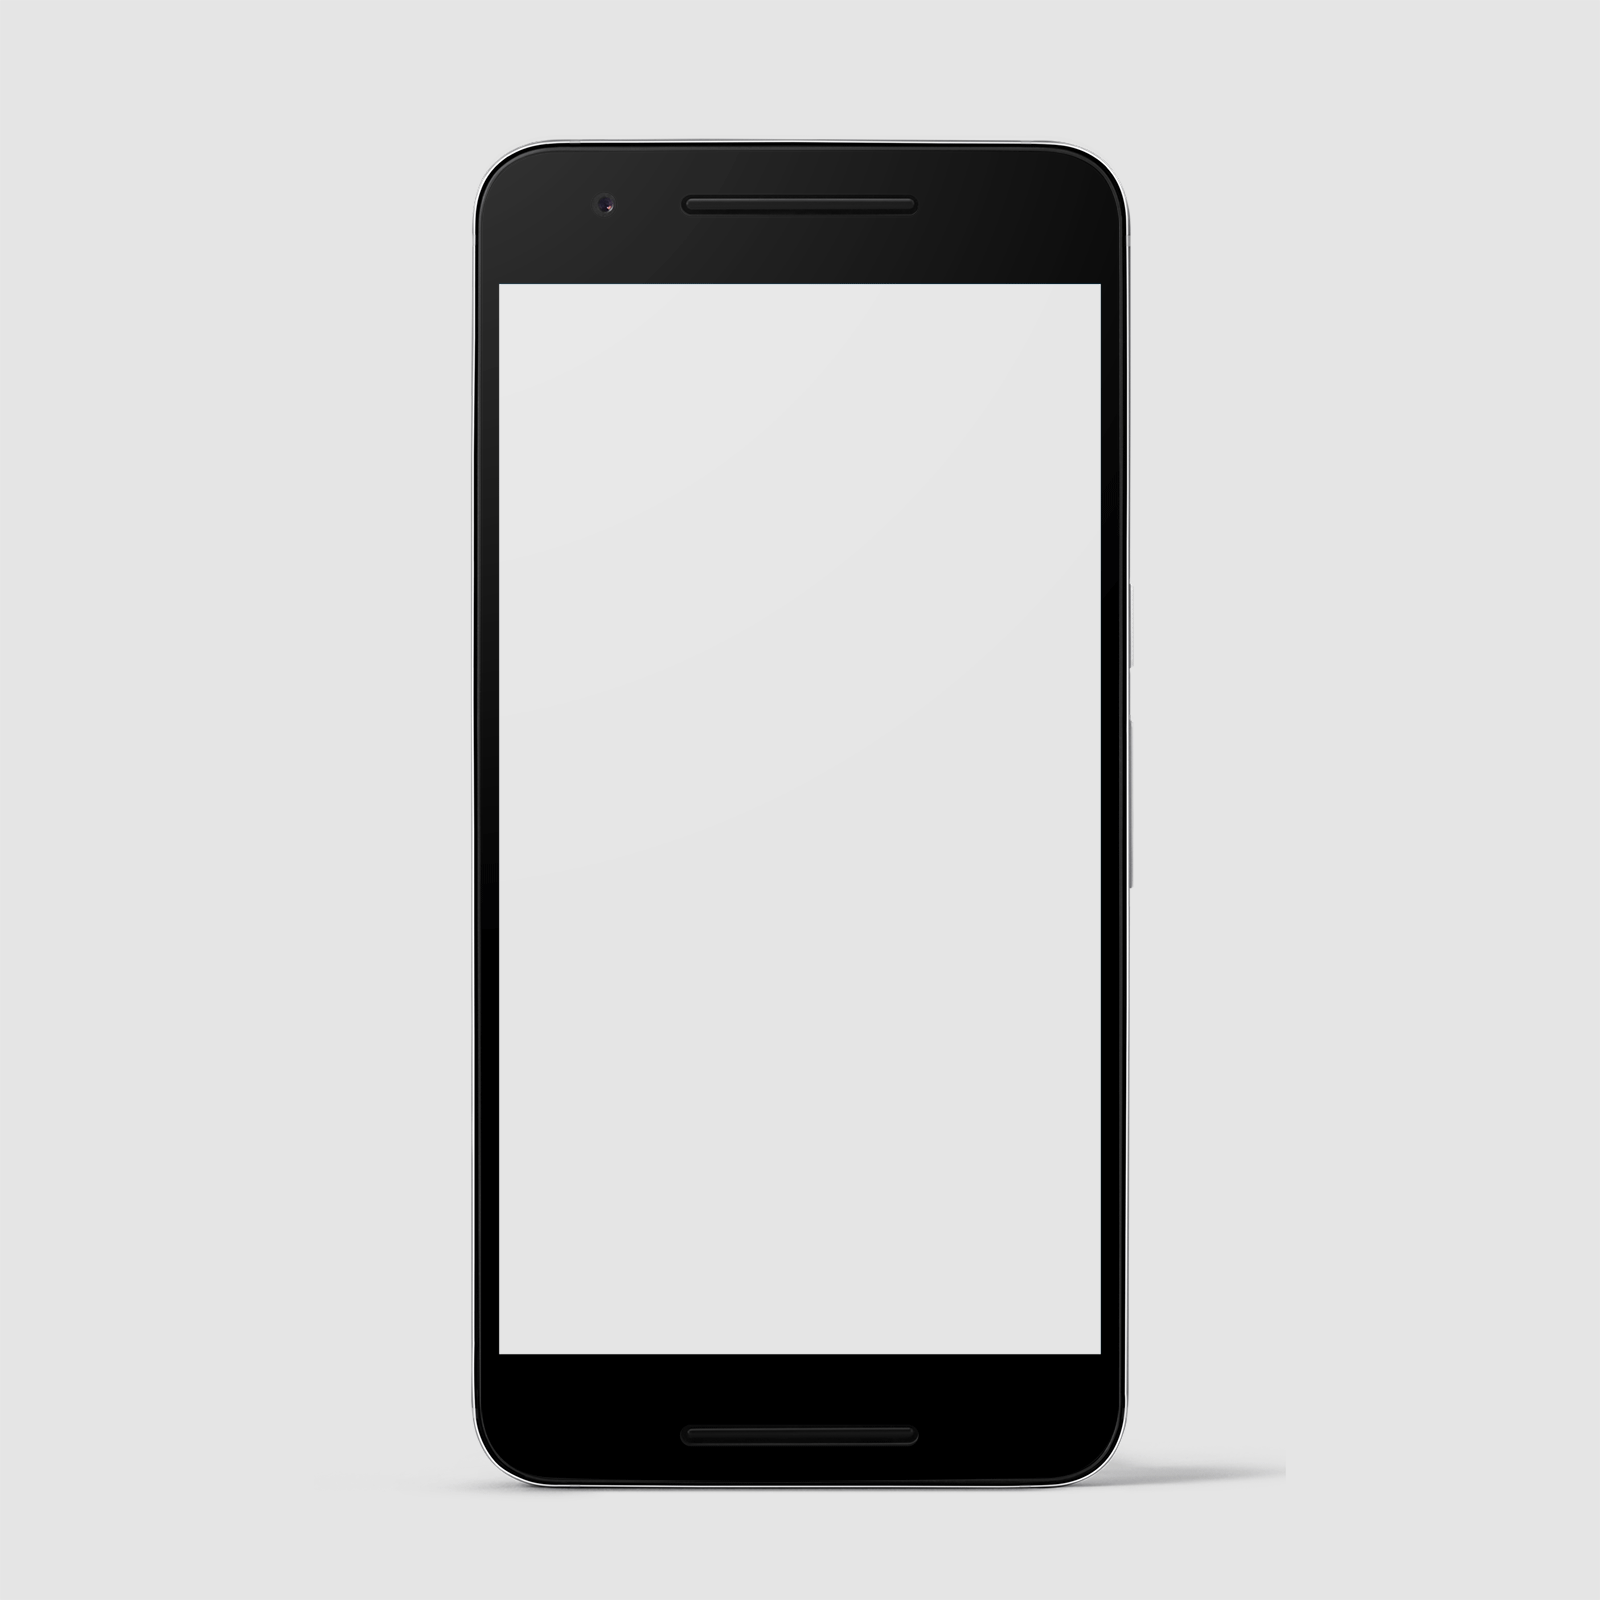 Android Tablet Design Template